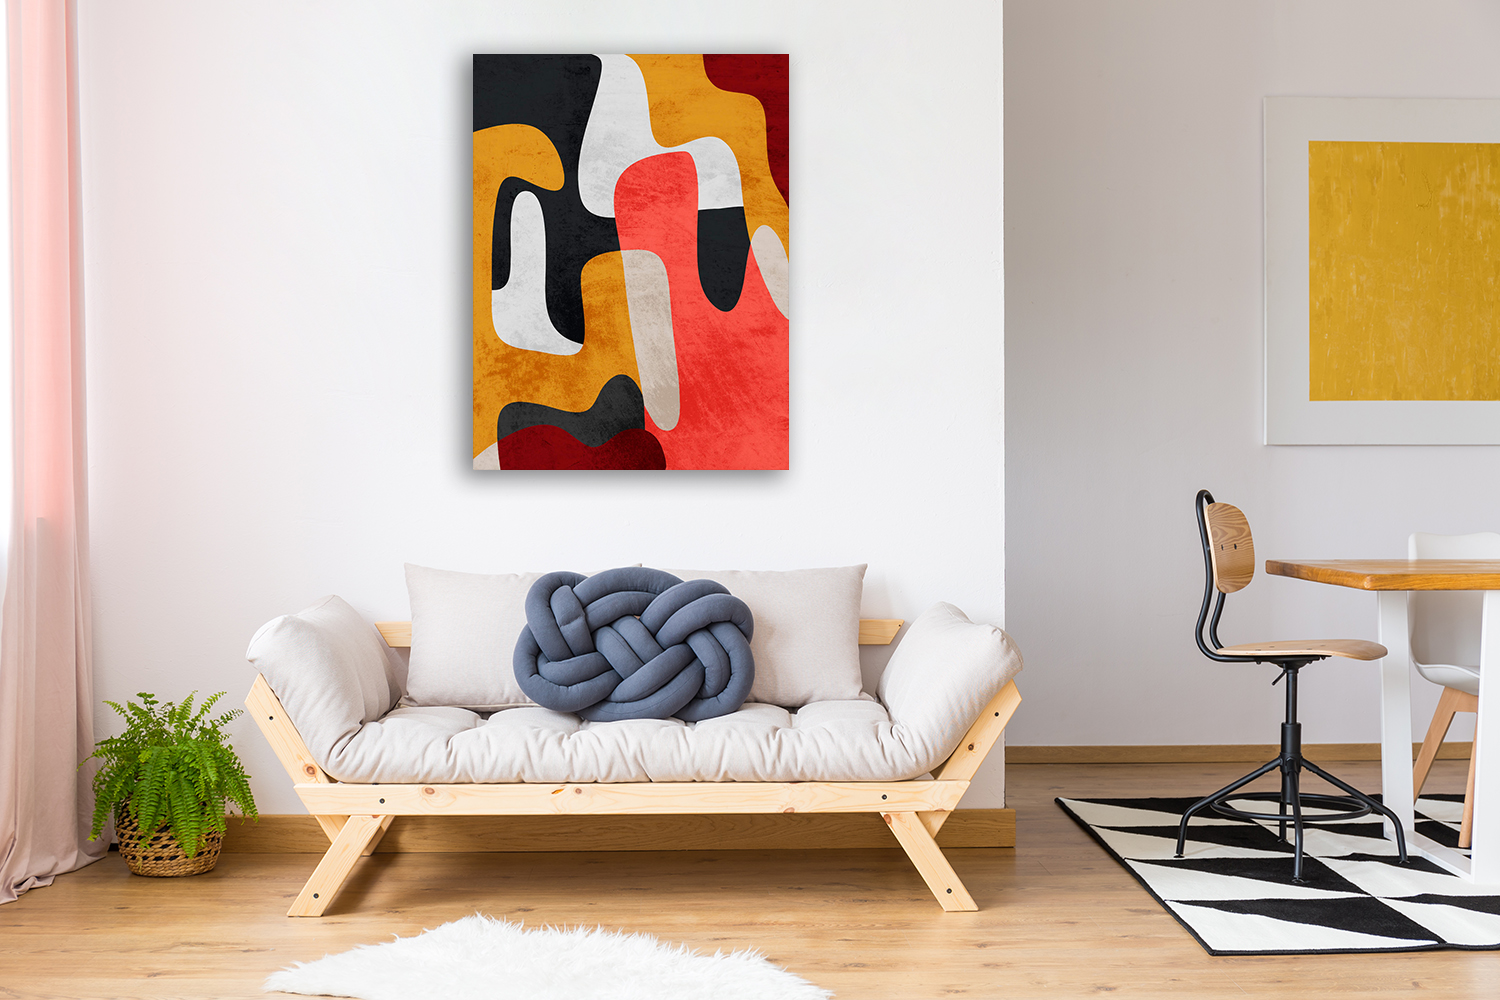 Portrait Abstract Wall Art on Canvas